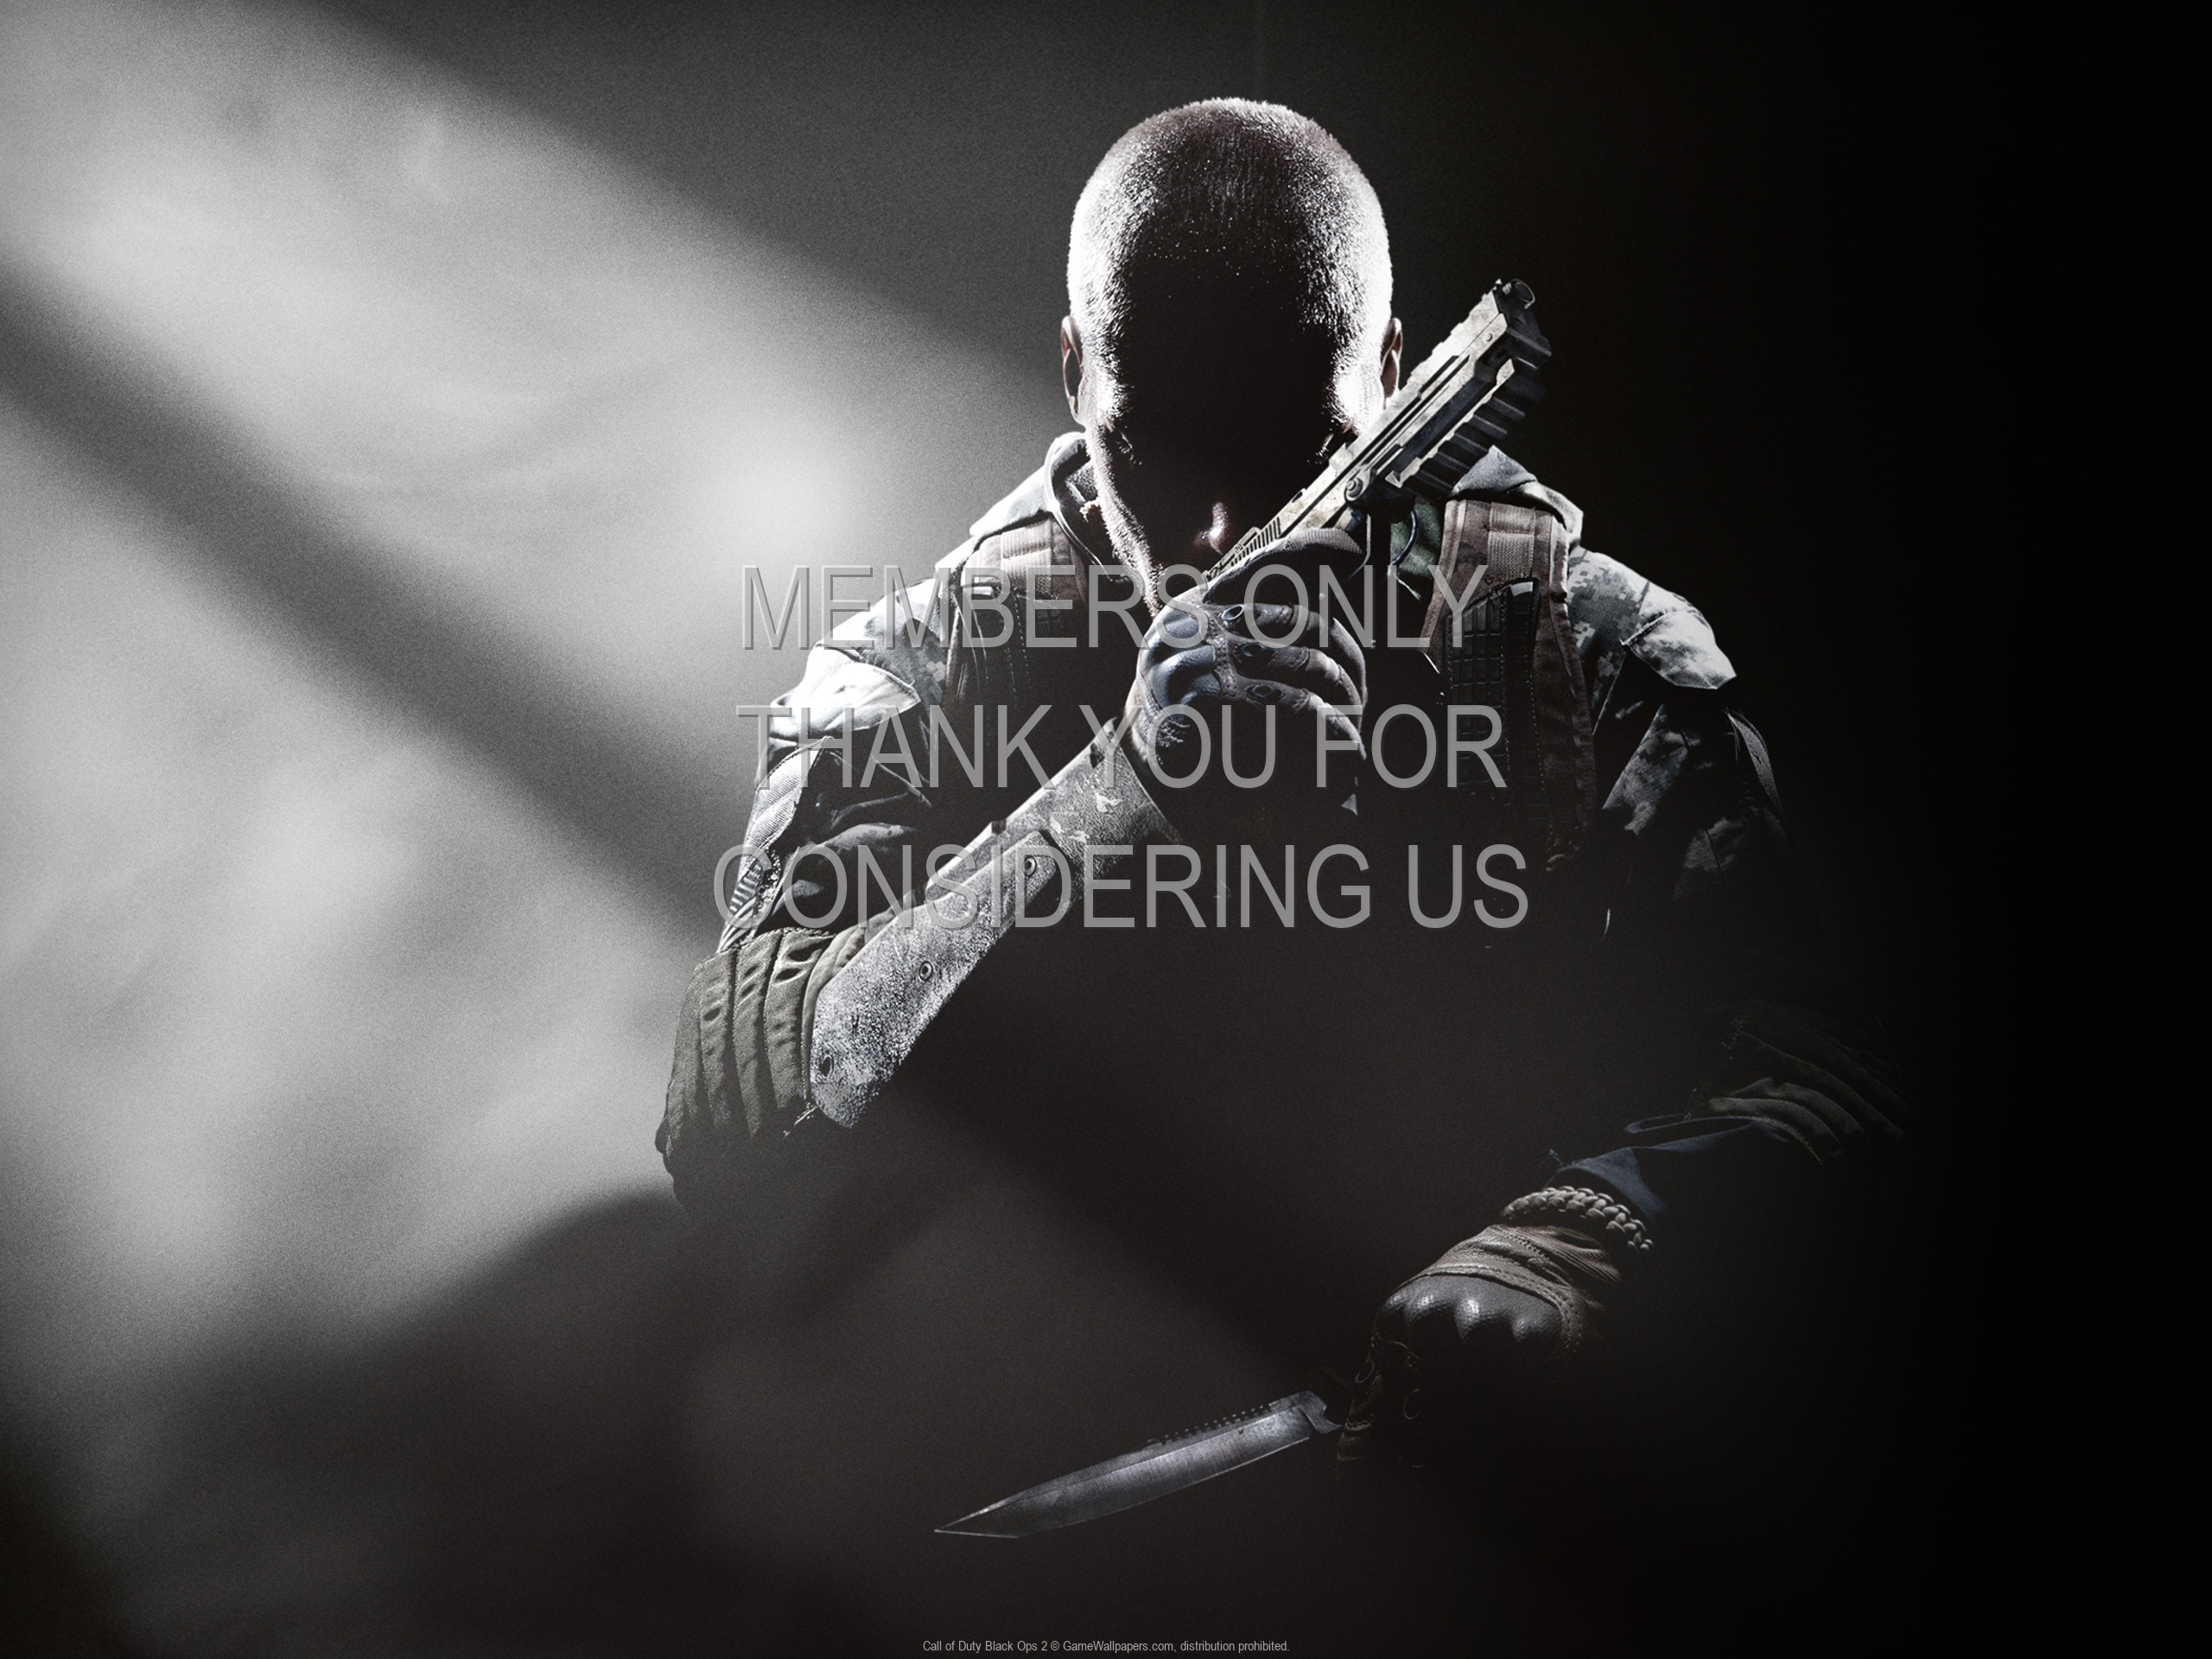 Call Of Duty Black Ops 2 Wallpaper 01 1080p Horizontal